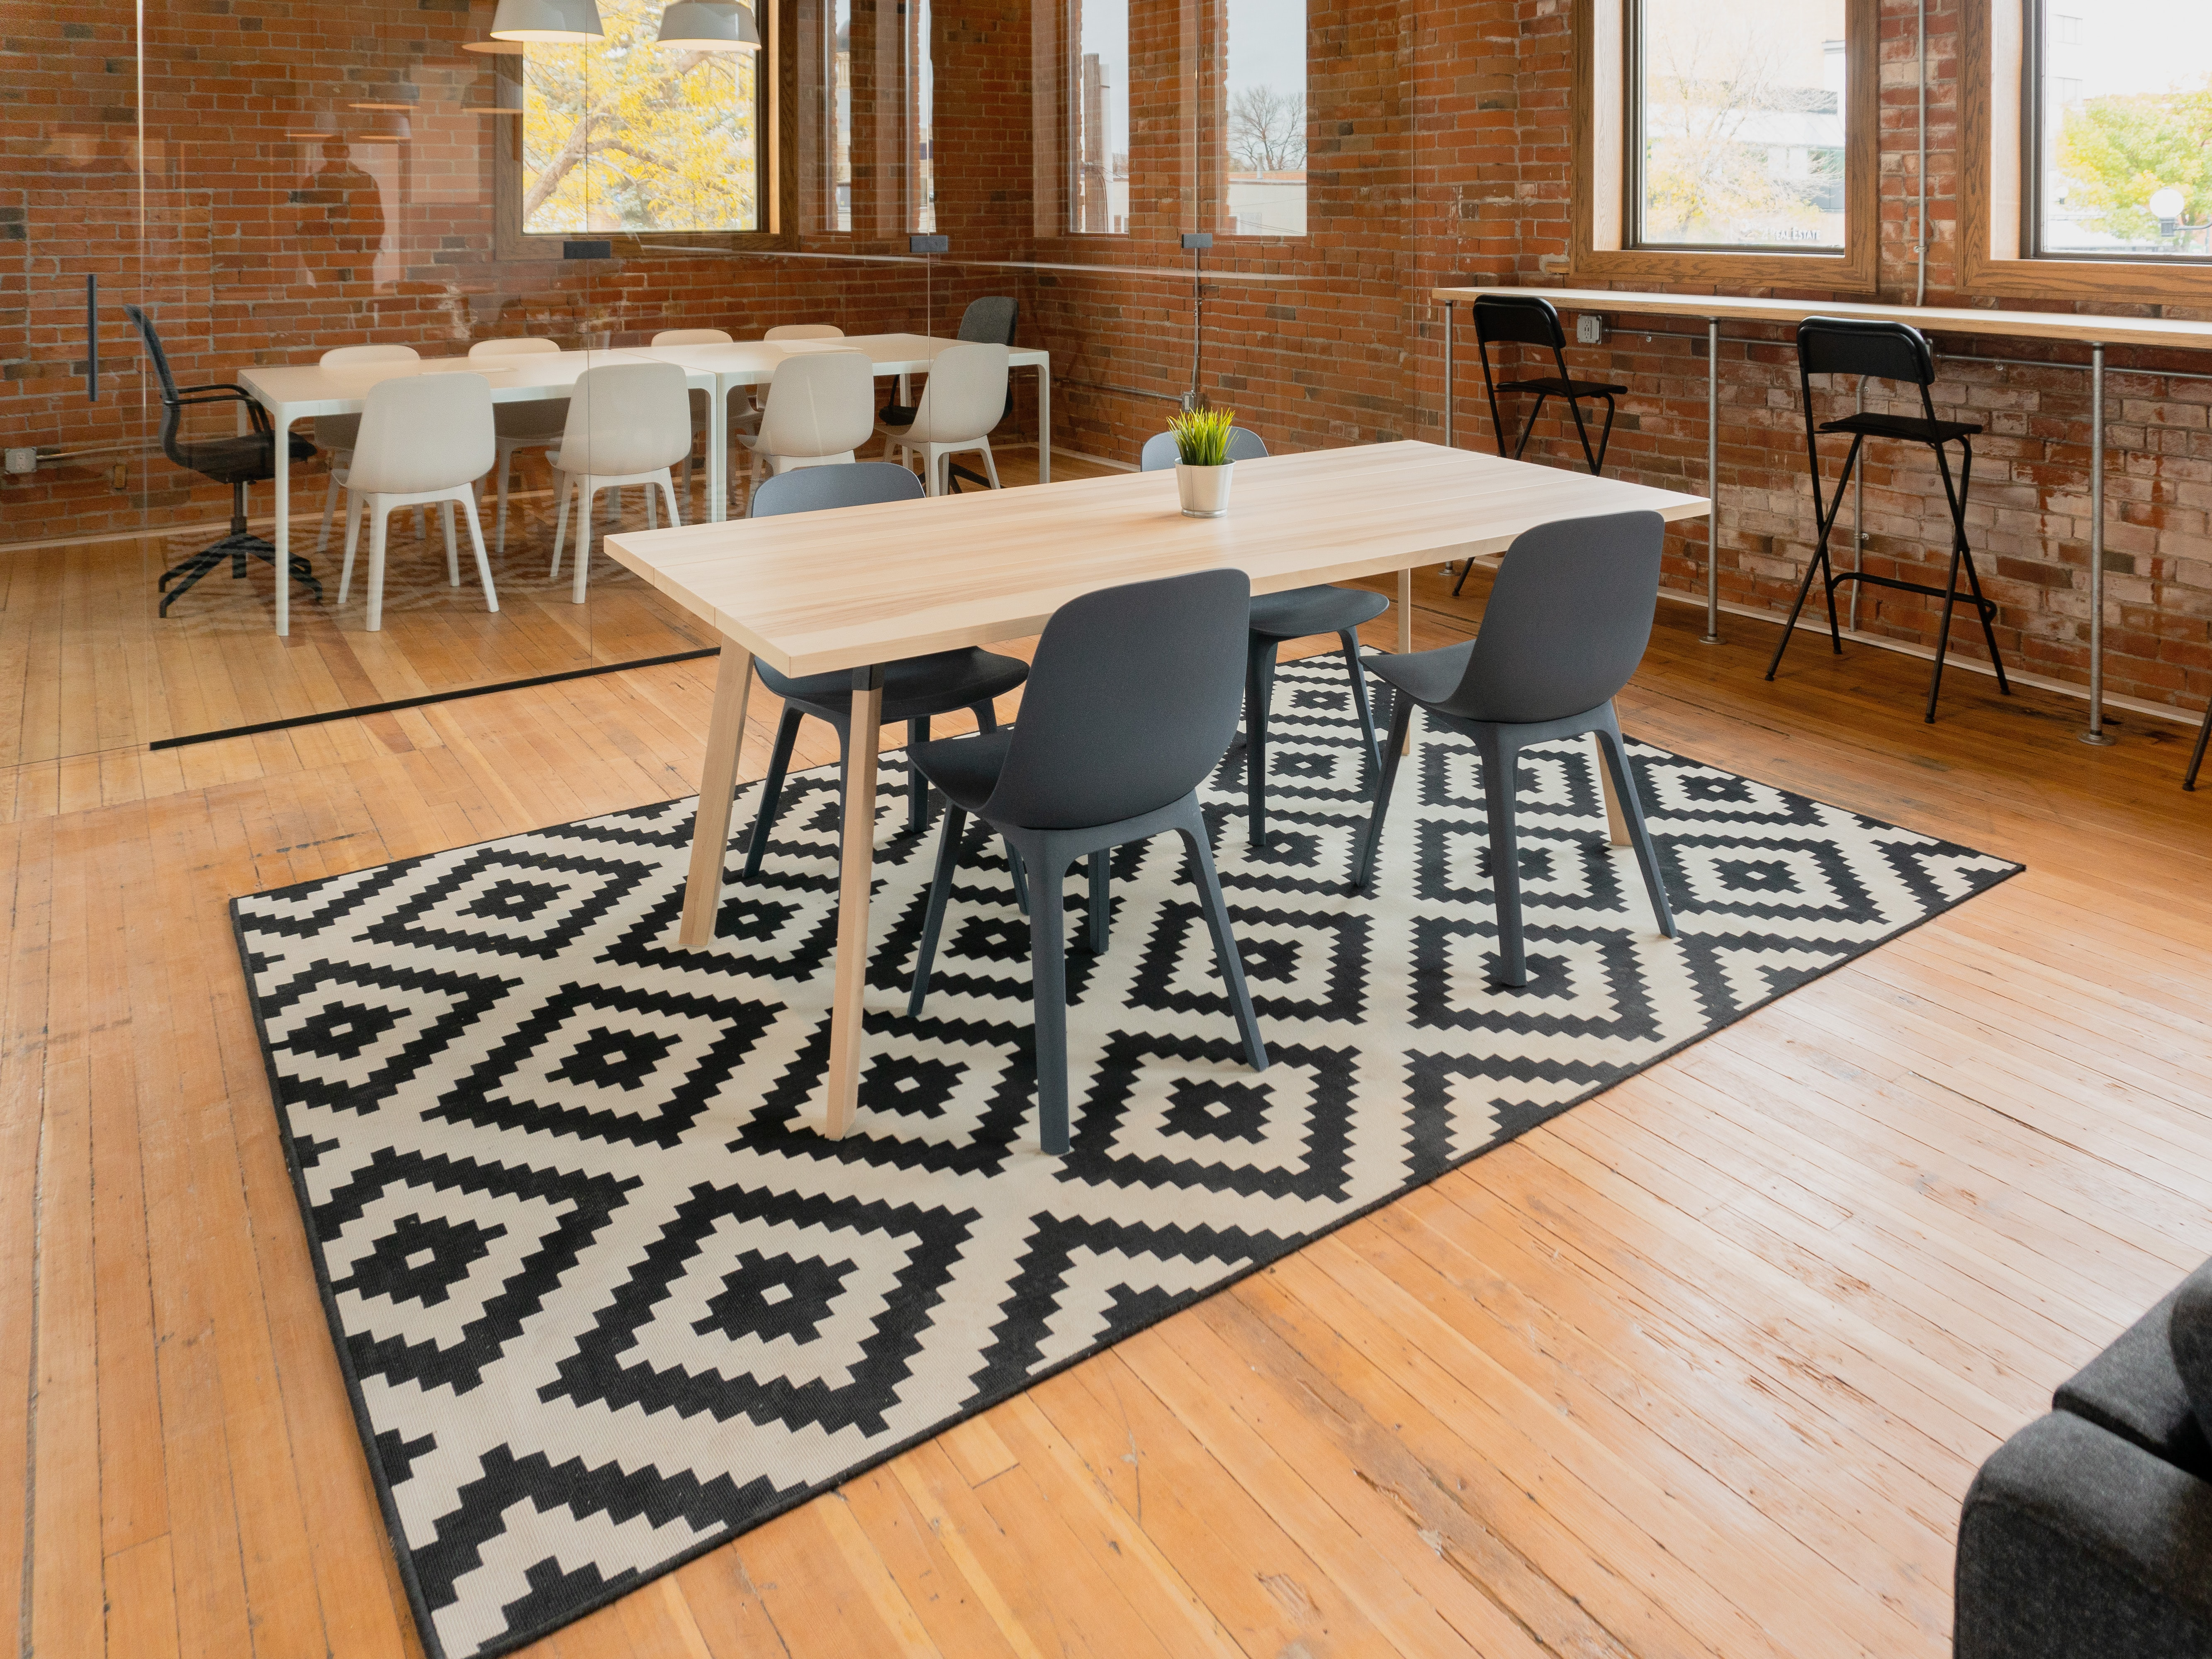 rectangular beige wooden table with four gray chairs